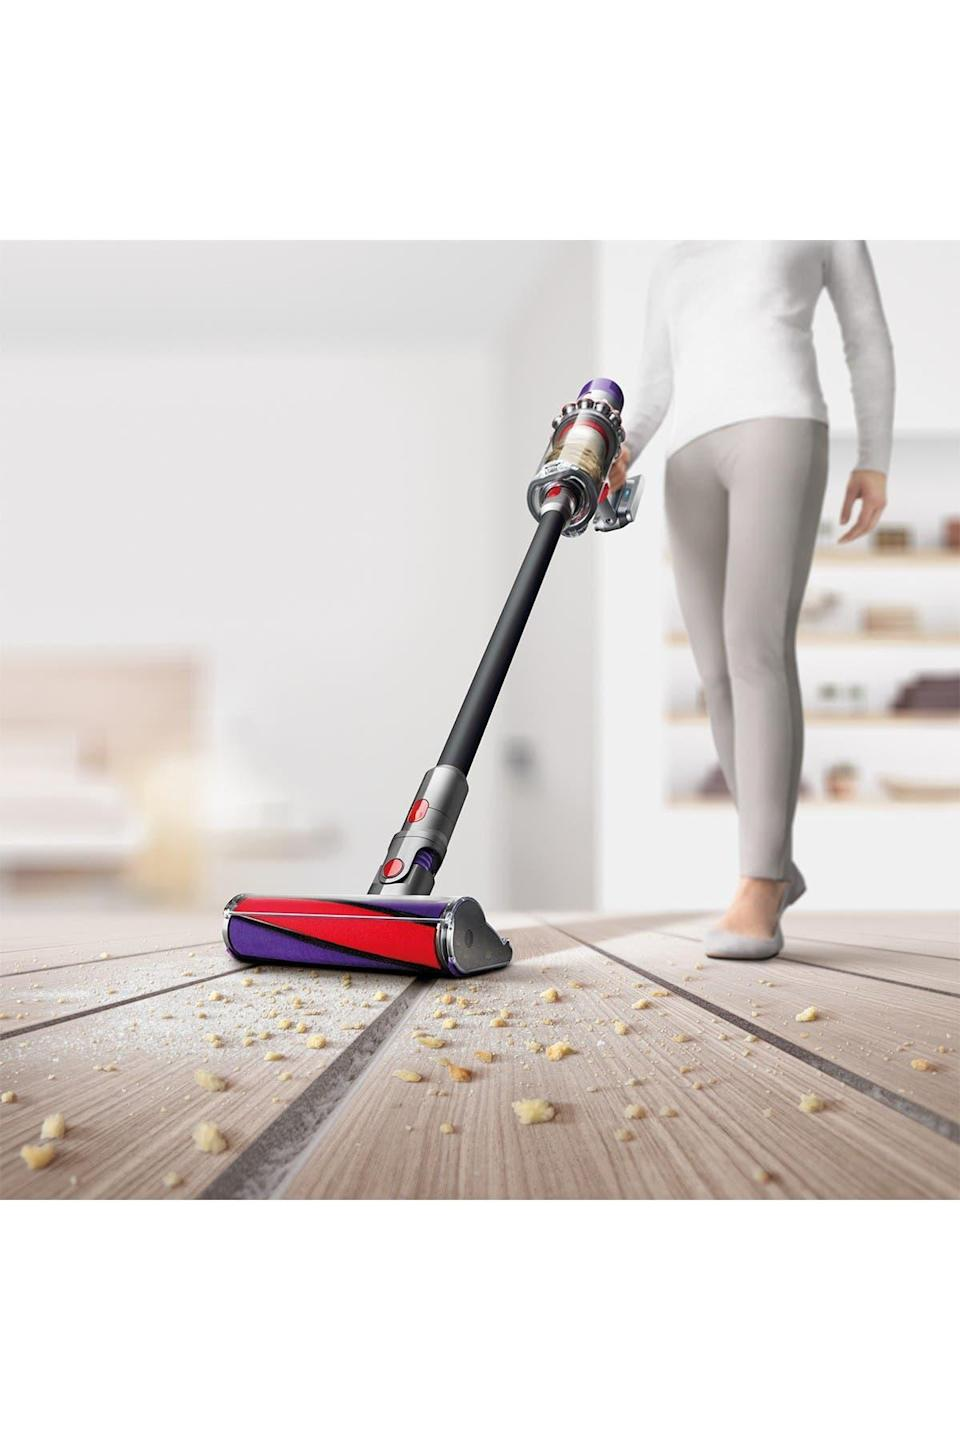 "<br><br><strong>Dyson</strong> Cyclone V10 Absolute Pro Cord Free Vacuum - Refurbished, $, available at <a href=""https://go.skimresources.com/?id=30283X879131&url=https%3A%2F%2Fwww.nordstromrack.com%2Fs%2Fdyson-cyclone-v-10-absolute-pro-cord-free-vacuum-refurbished%2Fn3547039"" rel=""nofollow noopener"" target=""_blank"" data-ylk=""slk:Nordstrom Rack"" class=""link rapid-noclick-resp"">Nordstrom Rack</a>"